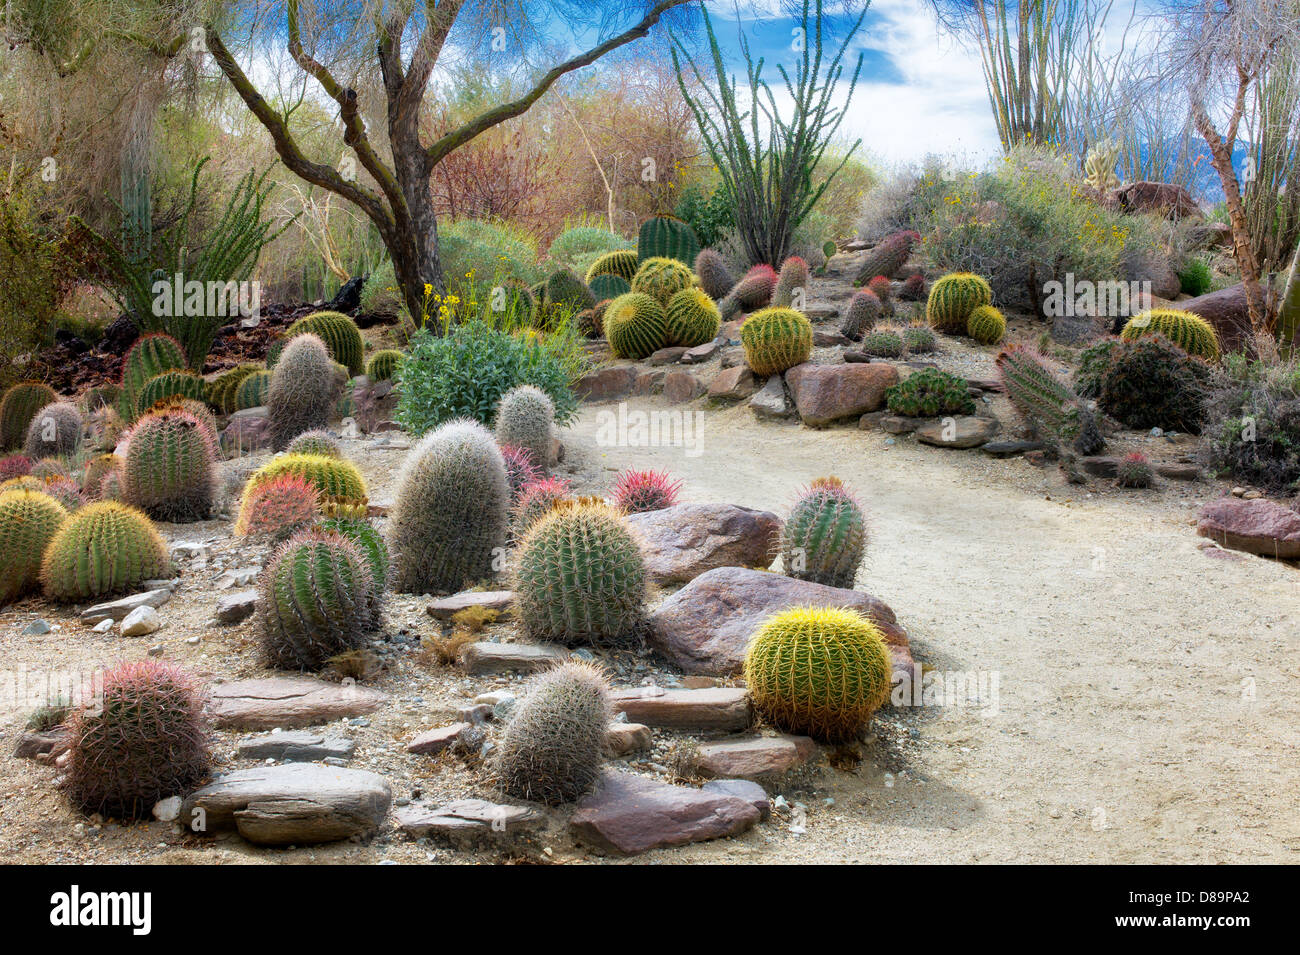 cactus garden stock photos  cactus garden stock images  alamy, Beautiful flower